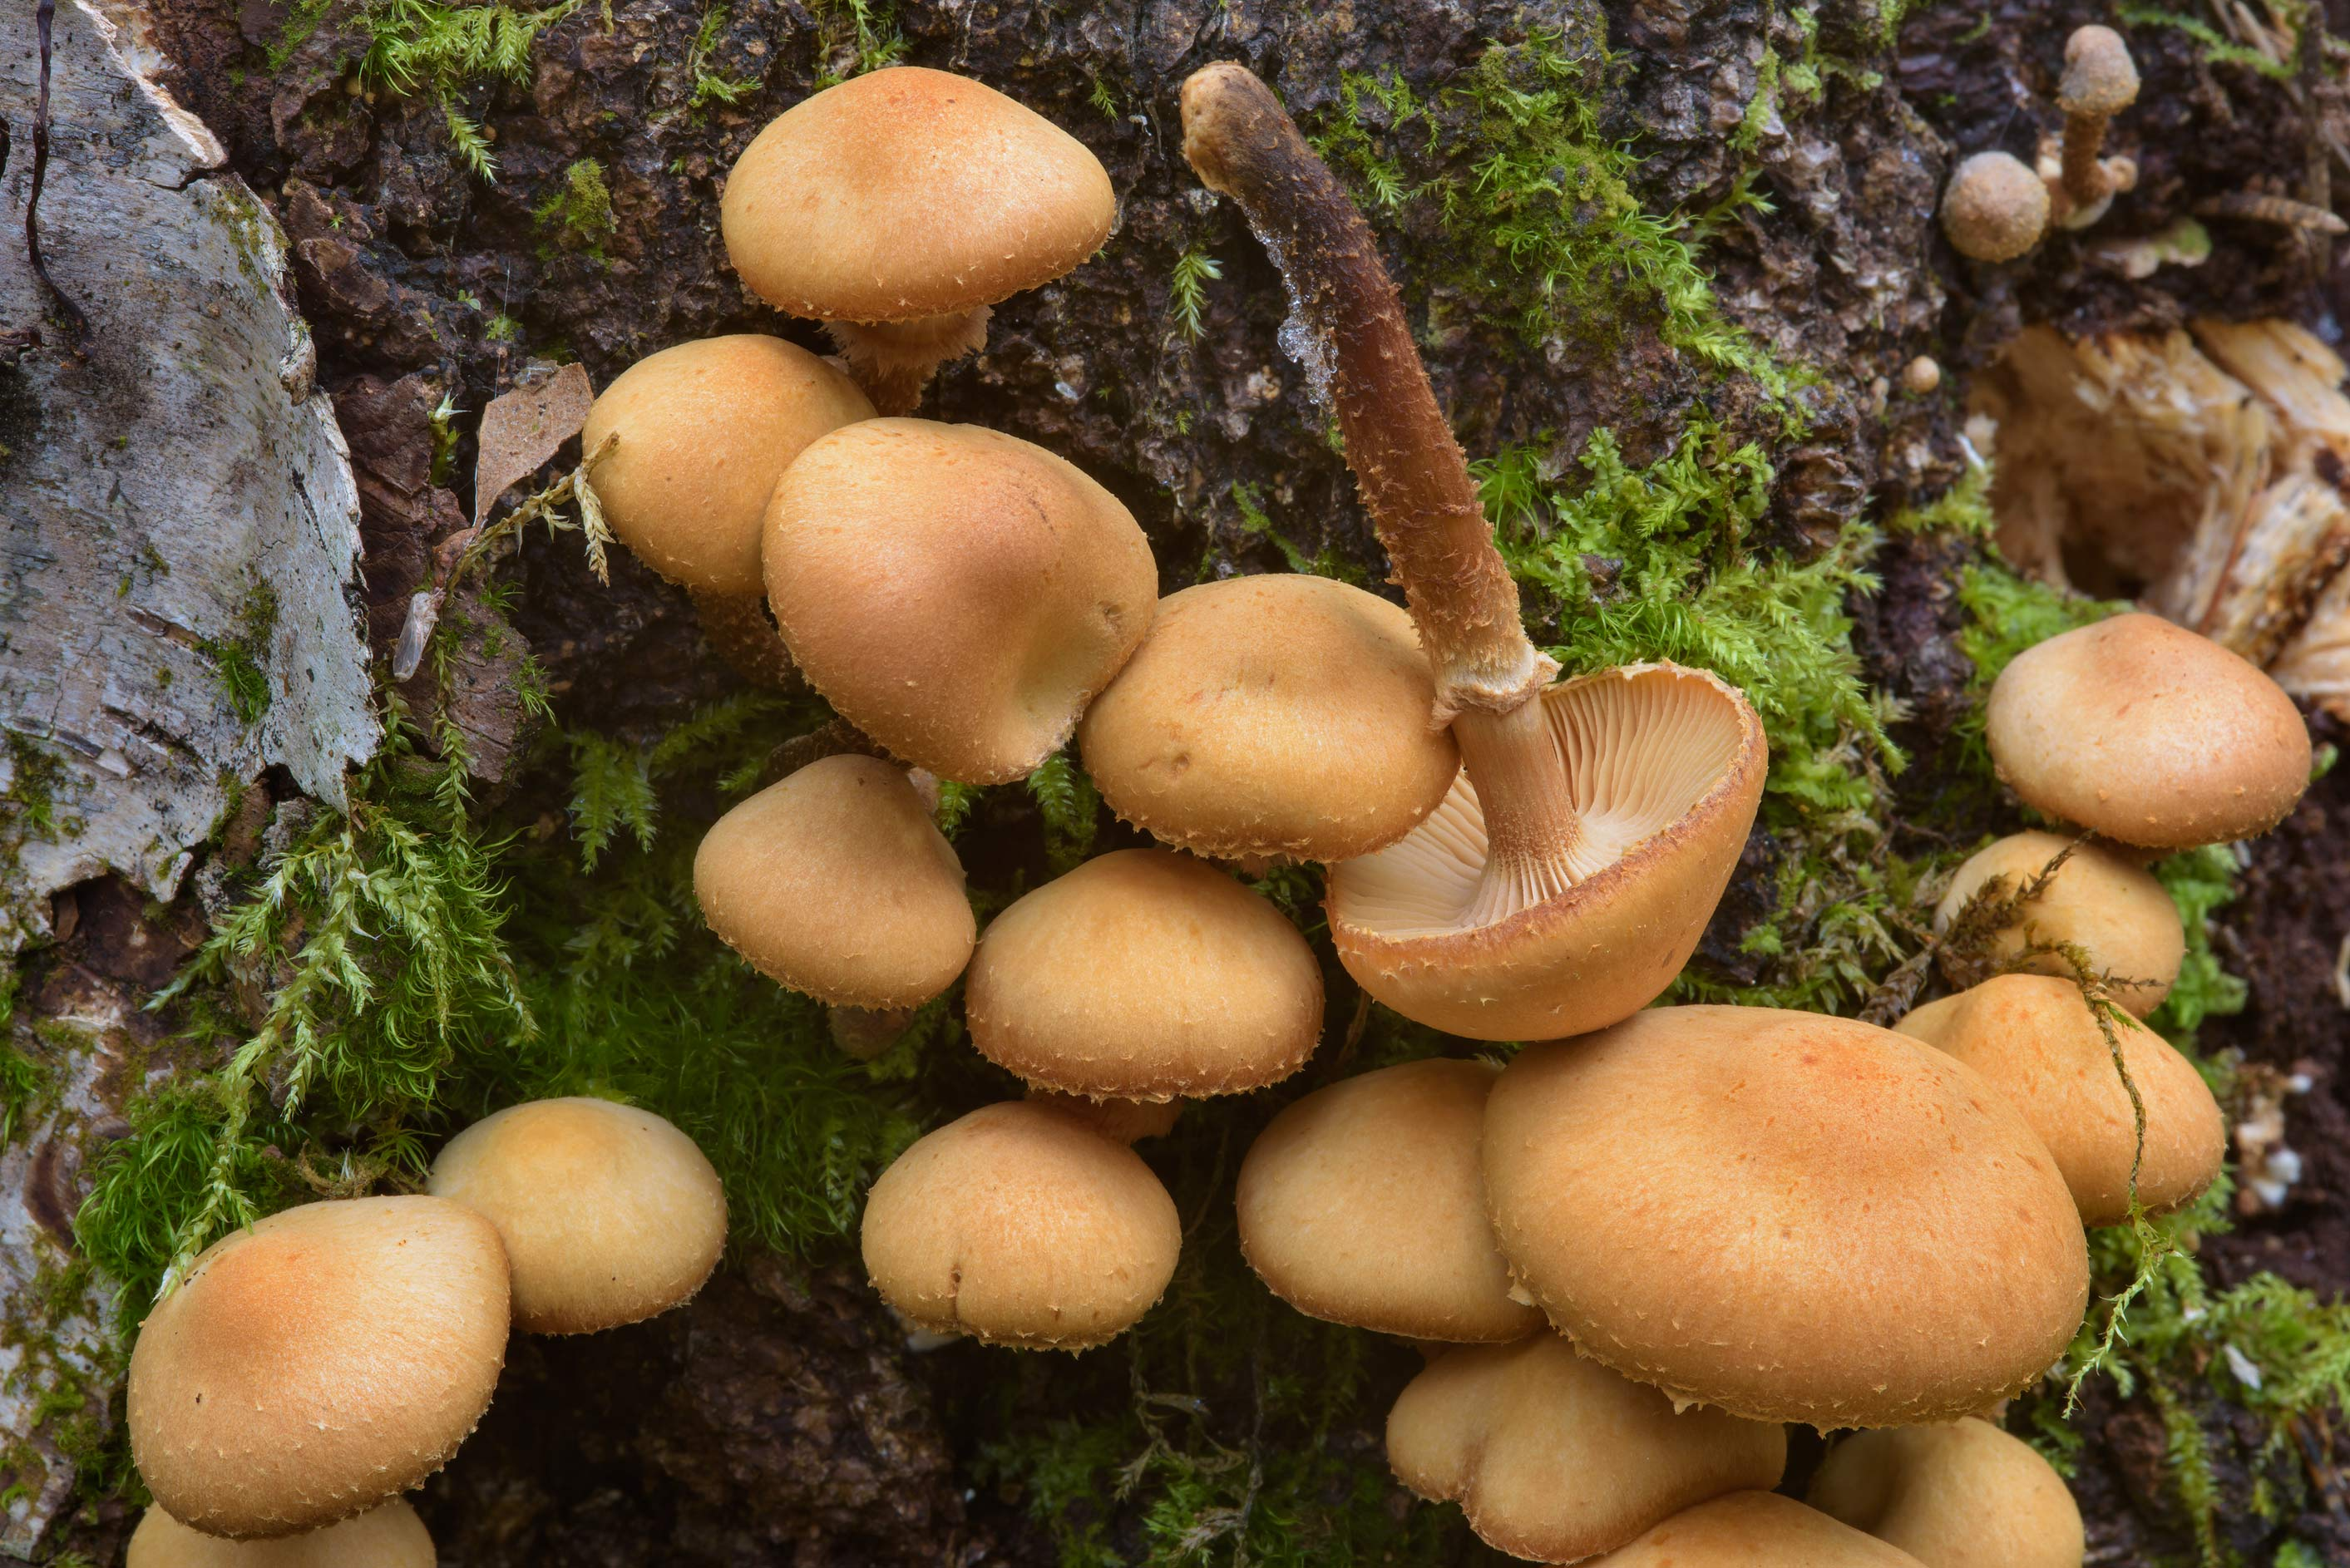 Sheathed Woodtuft mushrooms (Kuehneromyces...north from St.Petersburg, Russia